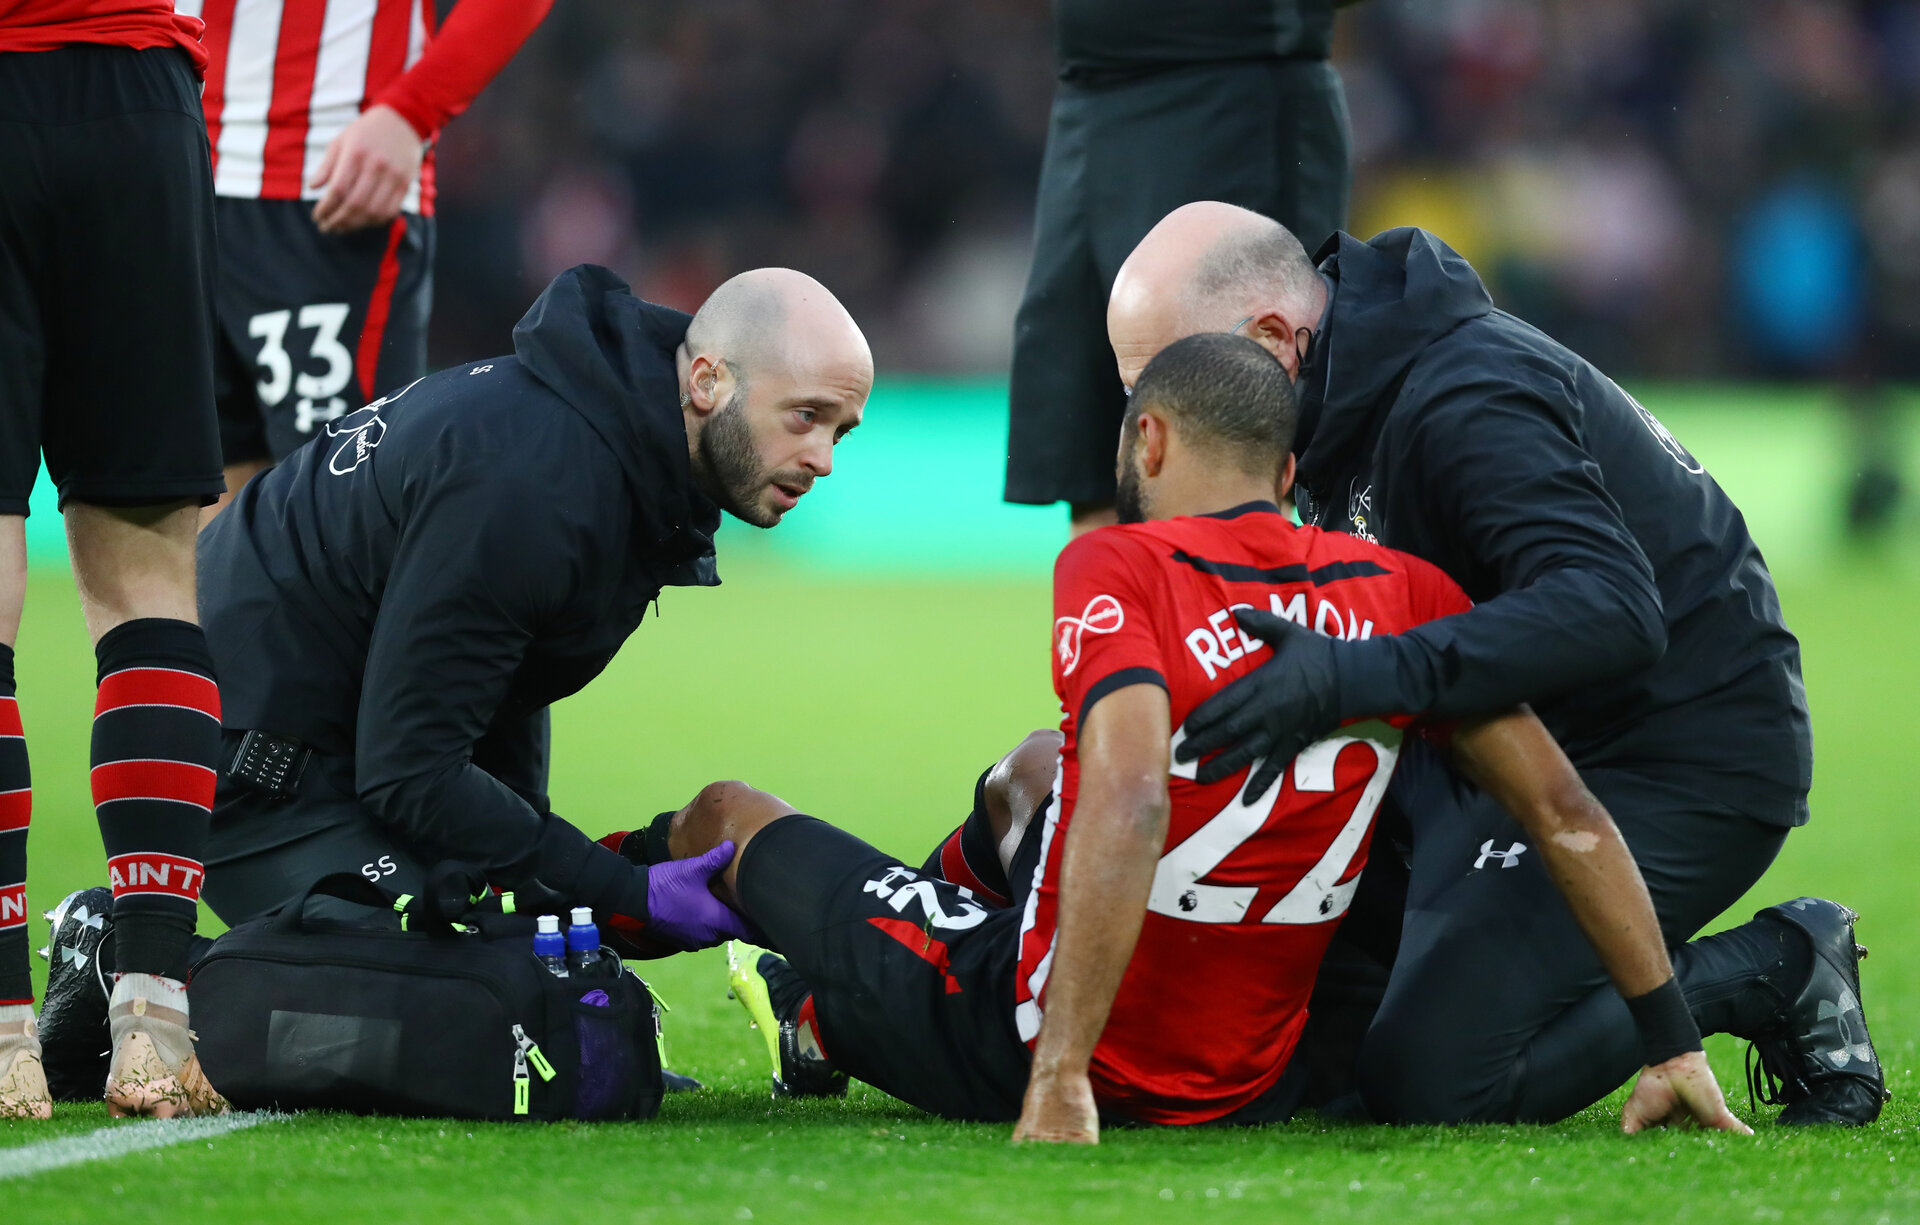 SOUTHAMPTON, ENGLAND - DECEMBER 16: Nathan Redmond of Southampton receives treatment form Steve Sparks during the Premier League match between Southampton FC and Arsenal FC at St Mary's Stadium on December 15, 2018 in Southampton, United Kingdom. (Photo by Matt Watson/Southampton FC via Getty Images)